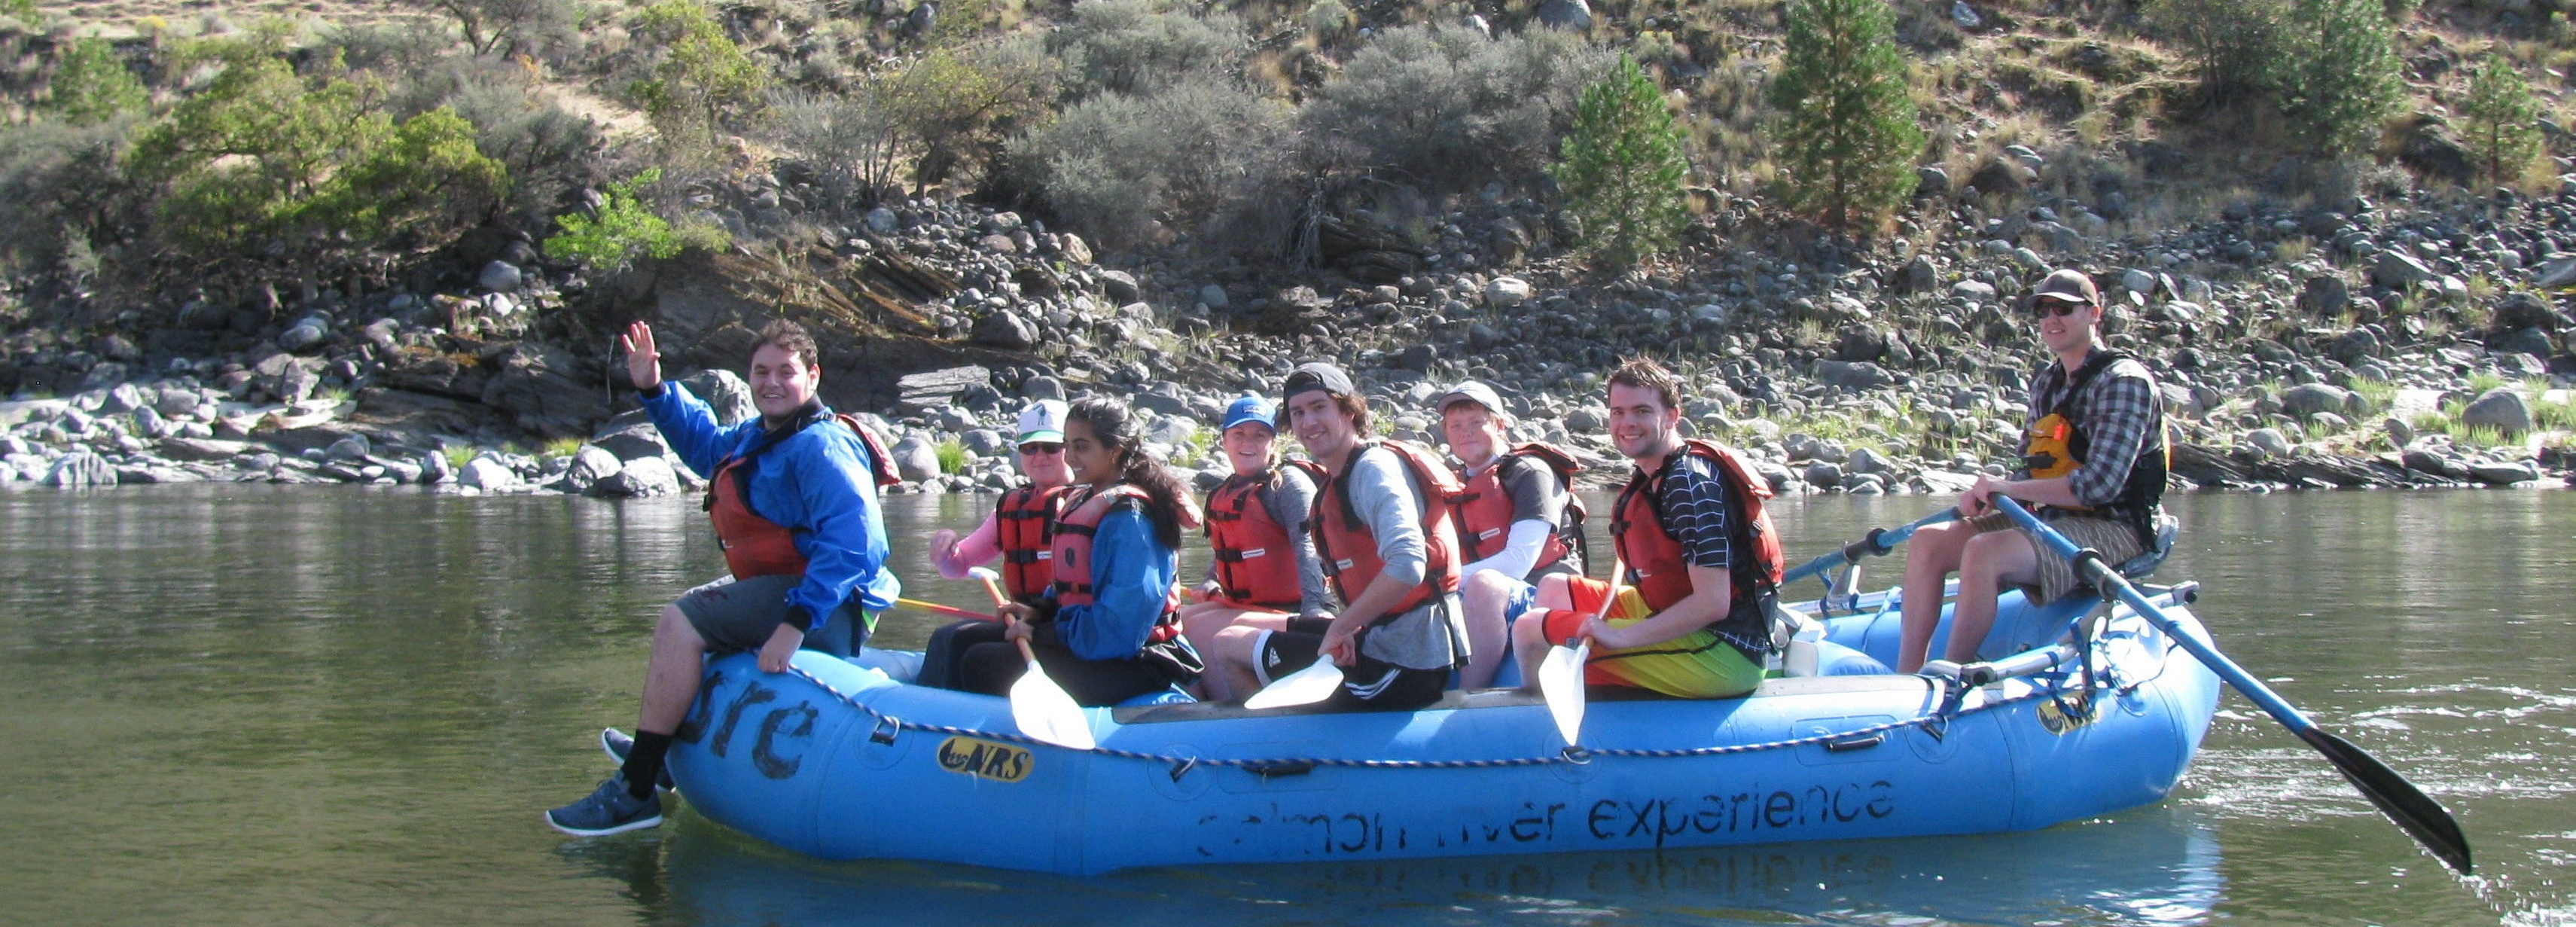 students on raft trip